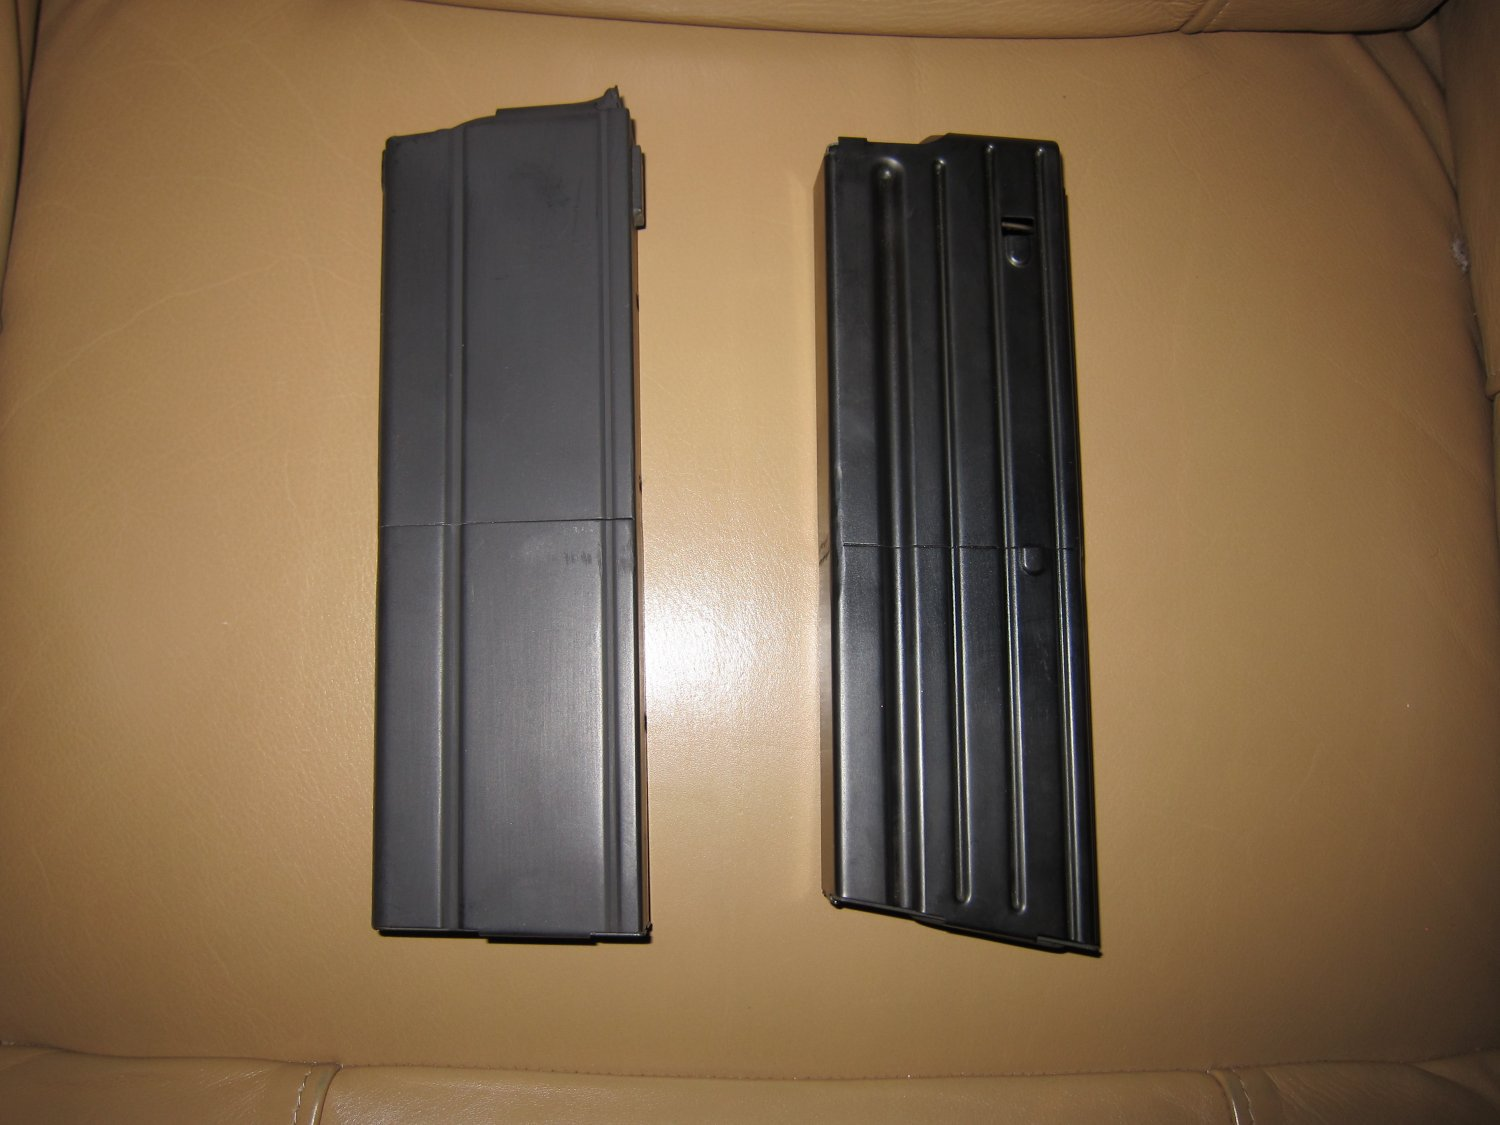 Higher Capacity 32 Round SR 25 and M14 M1A 7.62mm Rifle Magazines 3 <!  :en  >Higher Capacity 55 Round 5.56mm NATO and 32 Round 7.62mm NATO Rifle Magazines for Tactical AR (AR 15 and SR 25 type) and M14/M1A Rifles/Carbines/SBRs  (Photos and Video!) <!  :  >